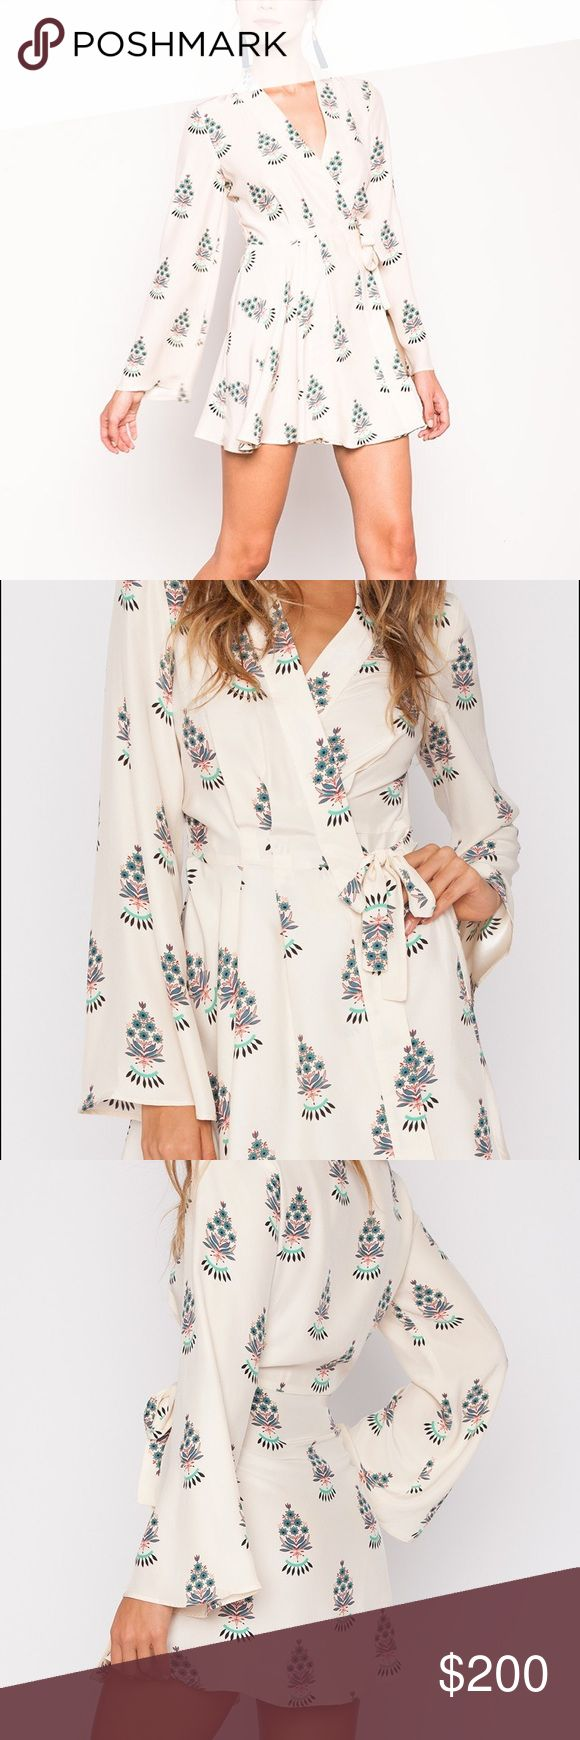 """Stone Cold Fox Fleur Hamlet wrap dress SUPER CUTE wrap style dress, however it's too short on me unfortunately due to my curvy bottom half. It is a size """"2"""" which would fit a size small or medium. Wish I could have made it work!! Stone Cold Fox Dresses Mini"""